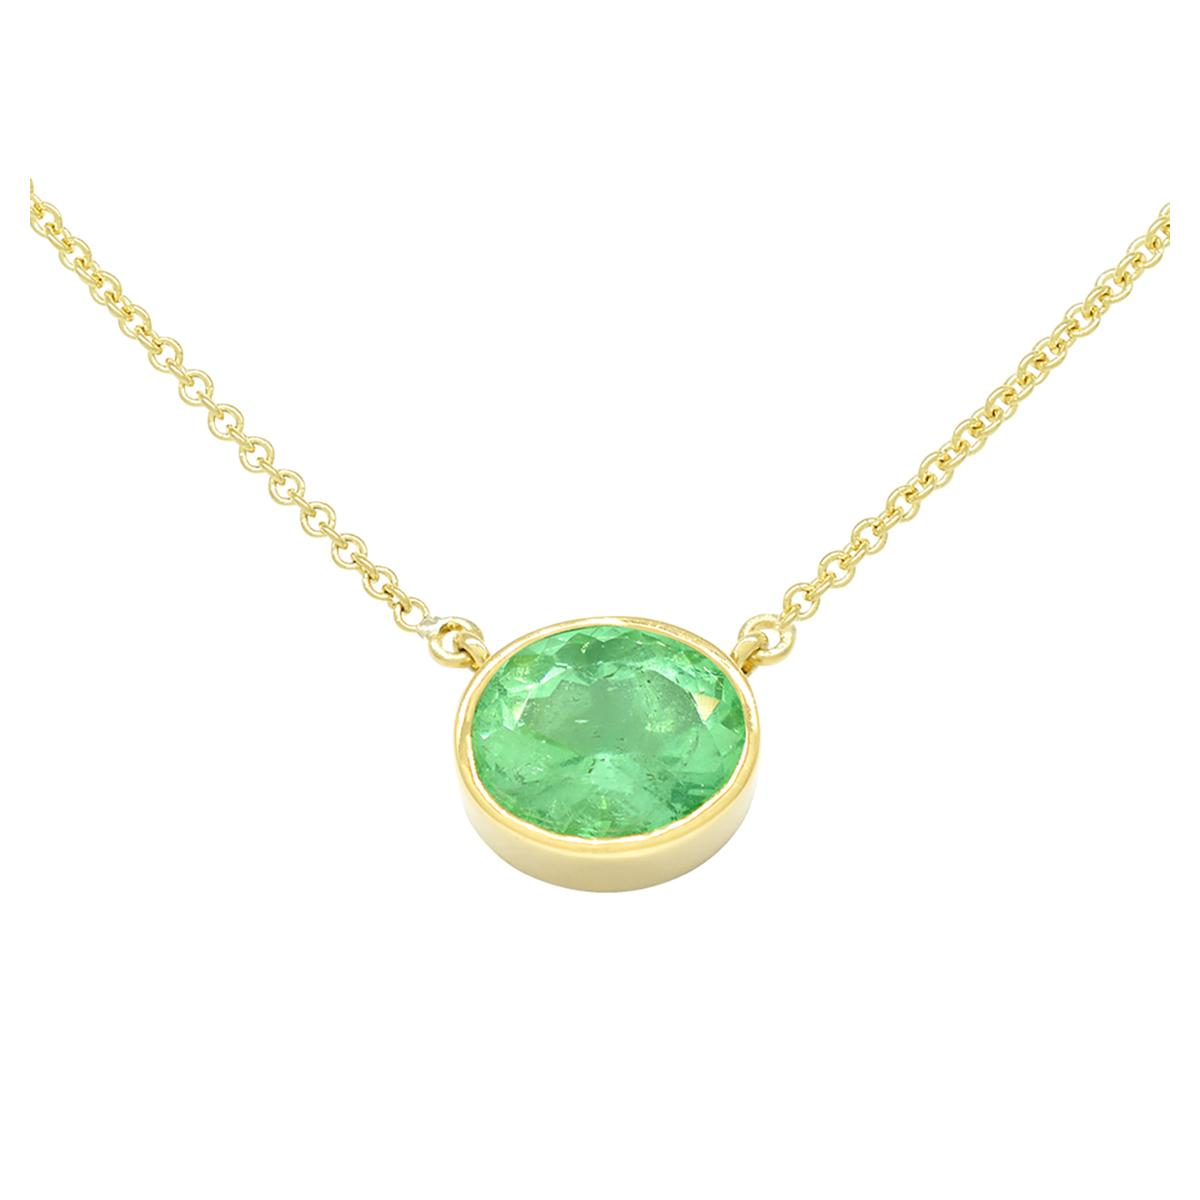 bezel-set-solitaire-emerald-necklace-in-18k-yellow-gold-with-oval-shape-emerald